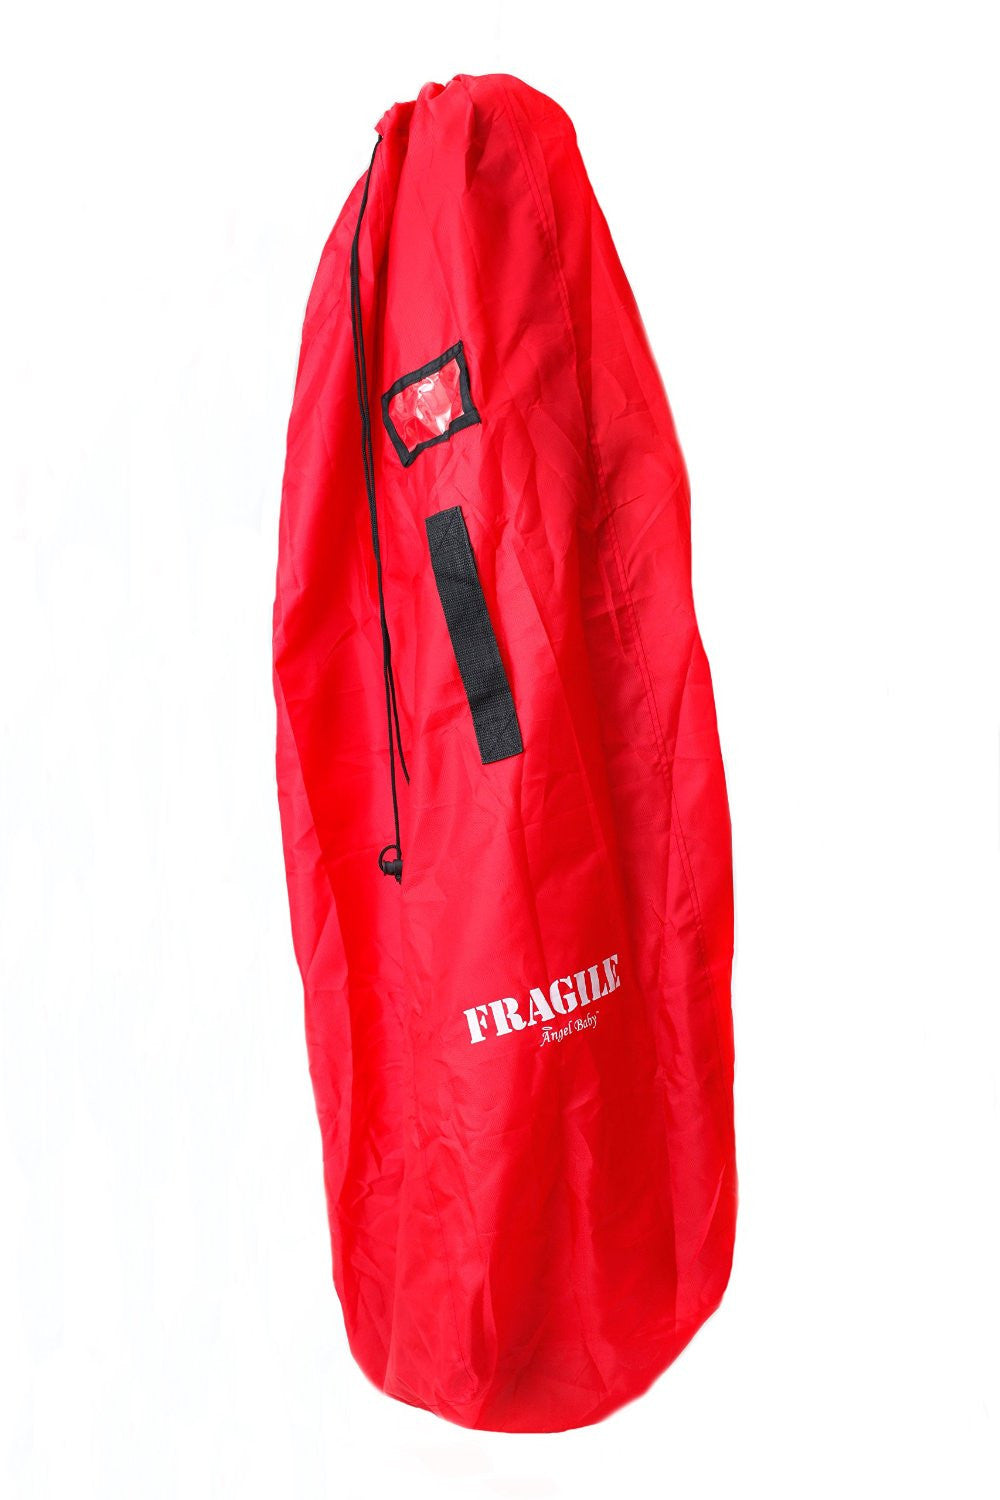 Angel Baby Red Travel Bag for Umbrella Strollers - Angel Direct Products - 6